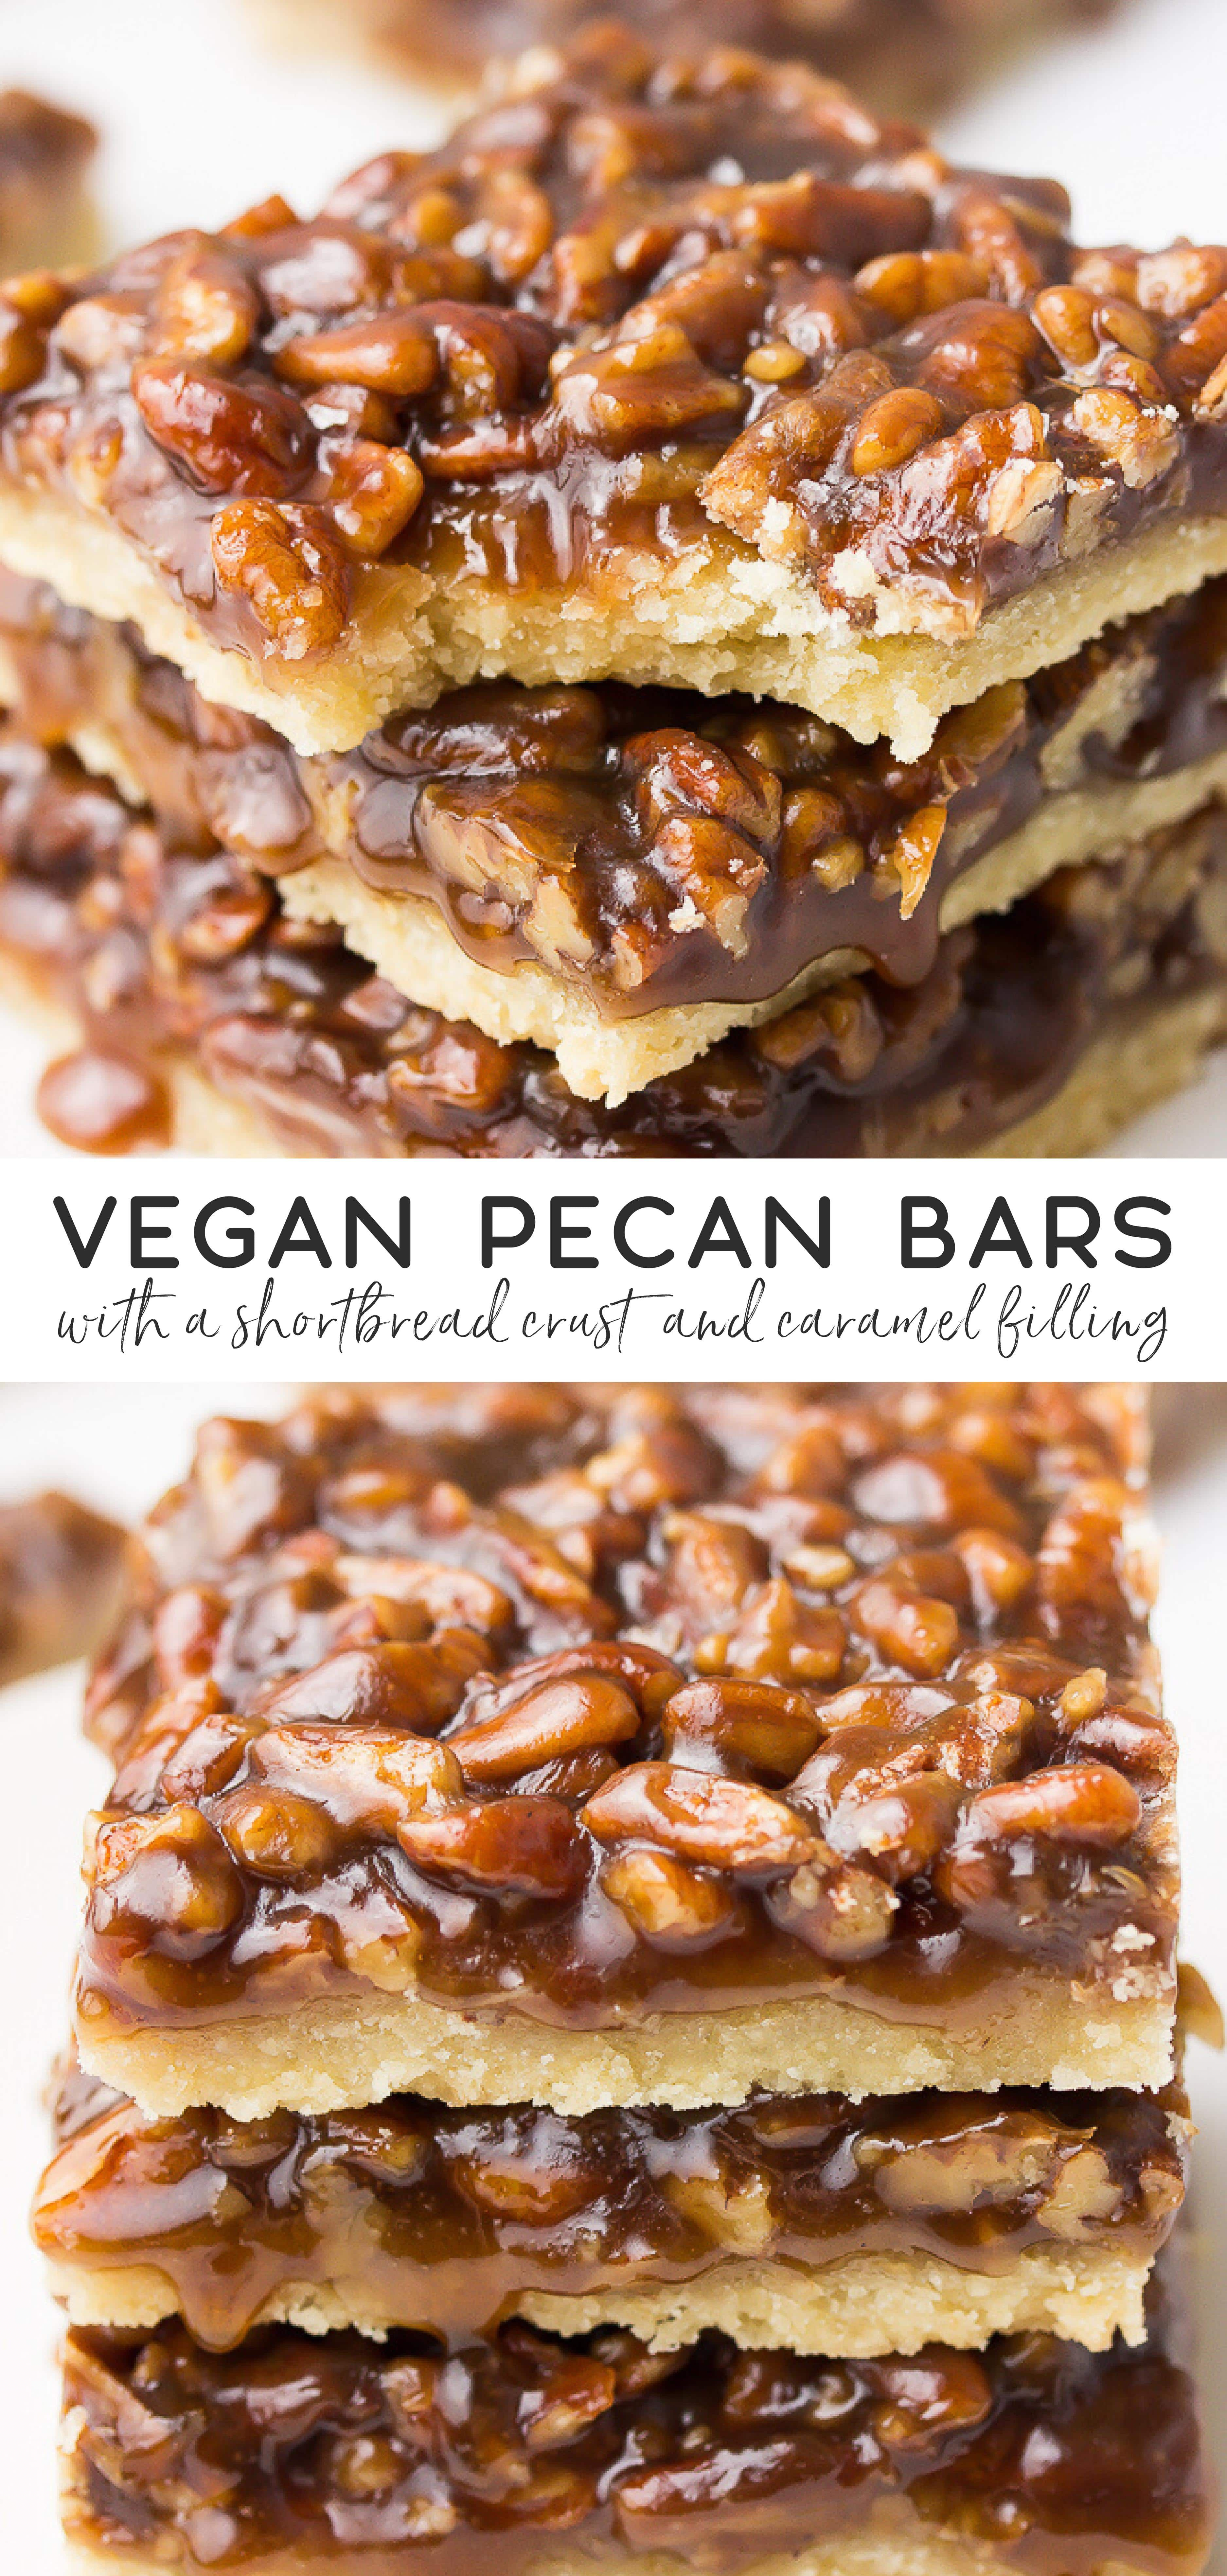 These are the most delicious Vegan Pecan Bars in the world, with a caramel pecan filling and shortbread crust. Better than pecan pie, with no corn syrup! #holidaytreats